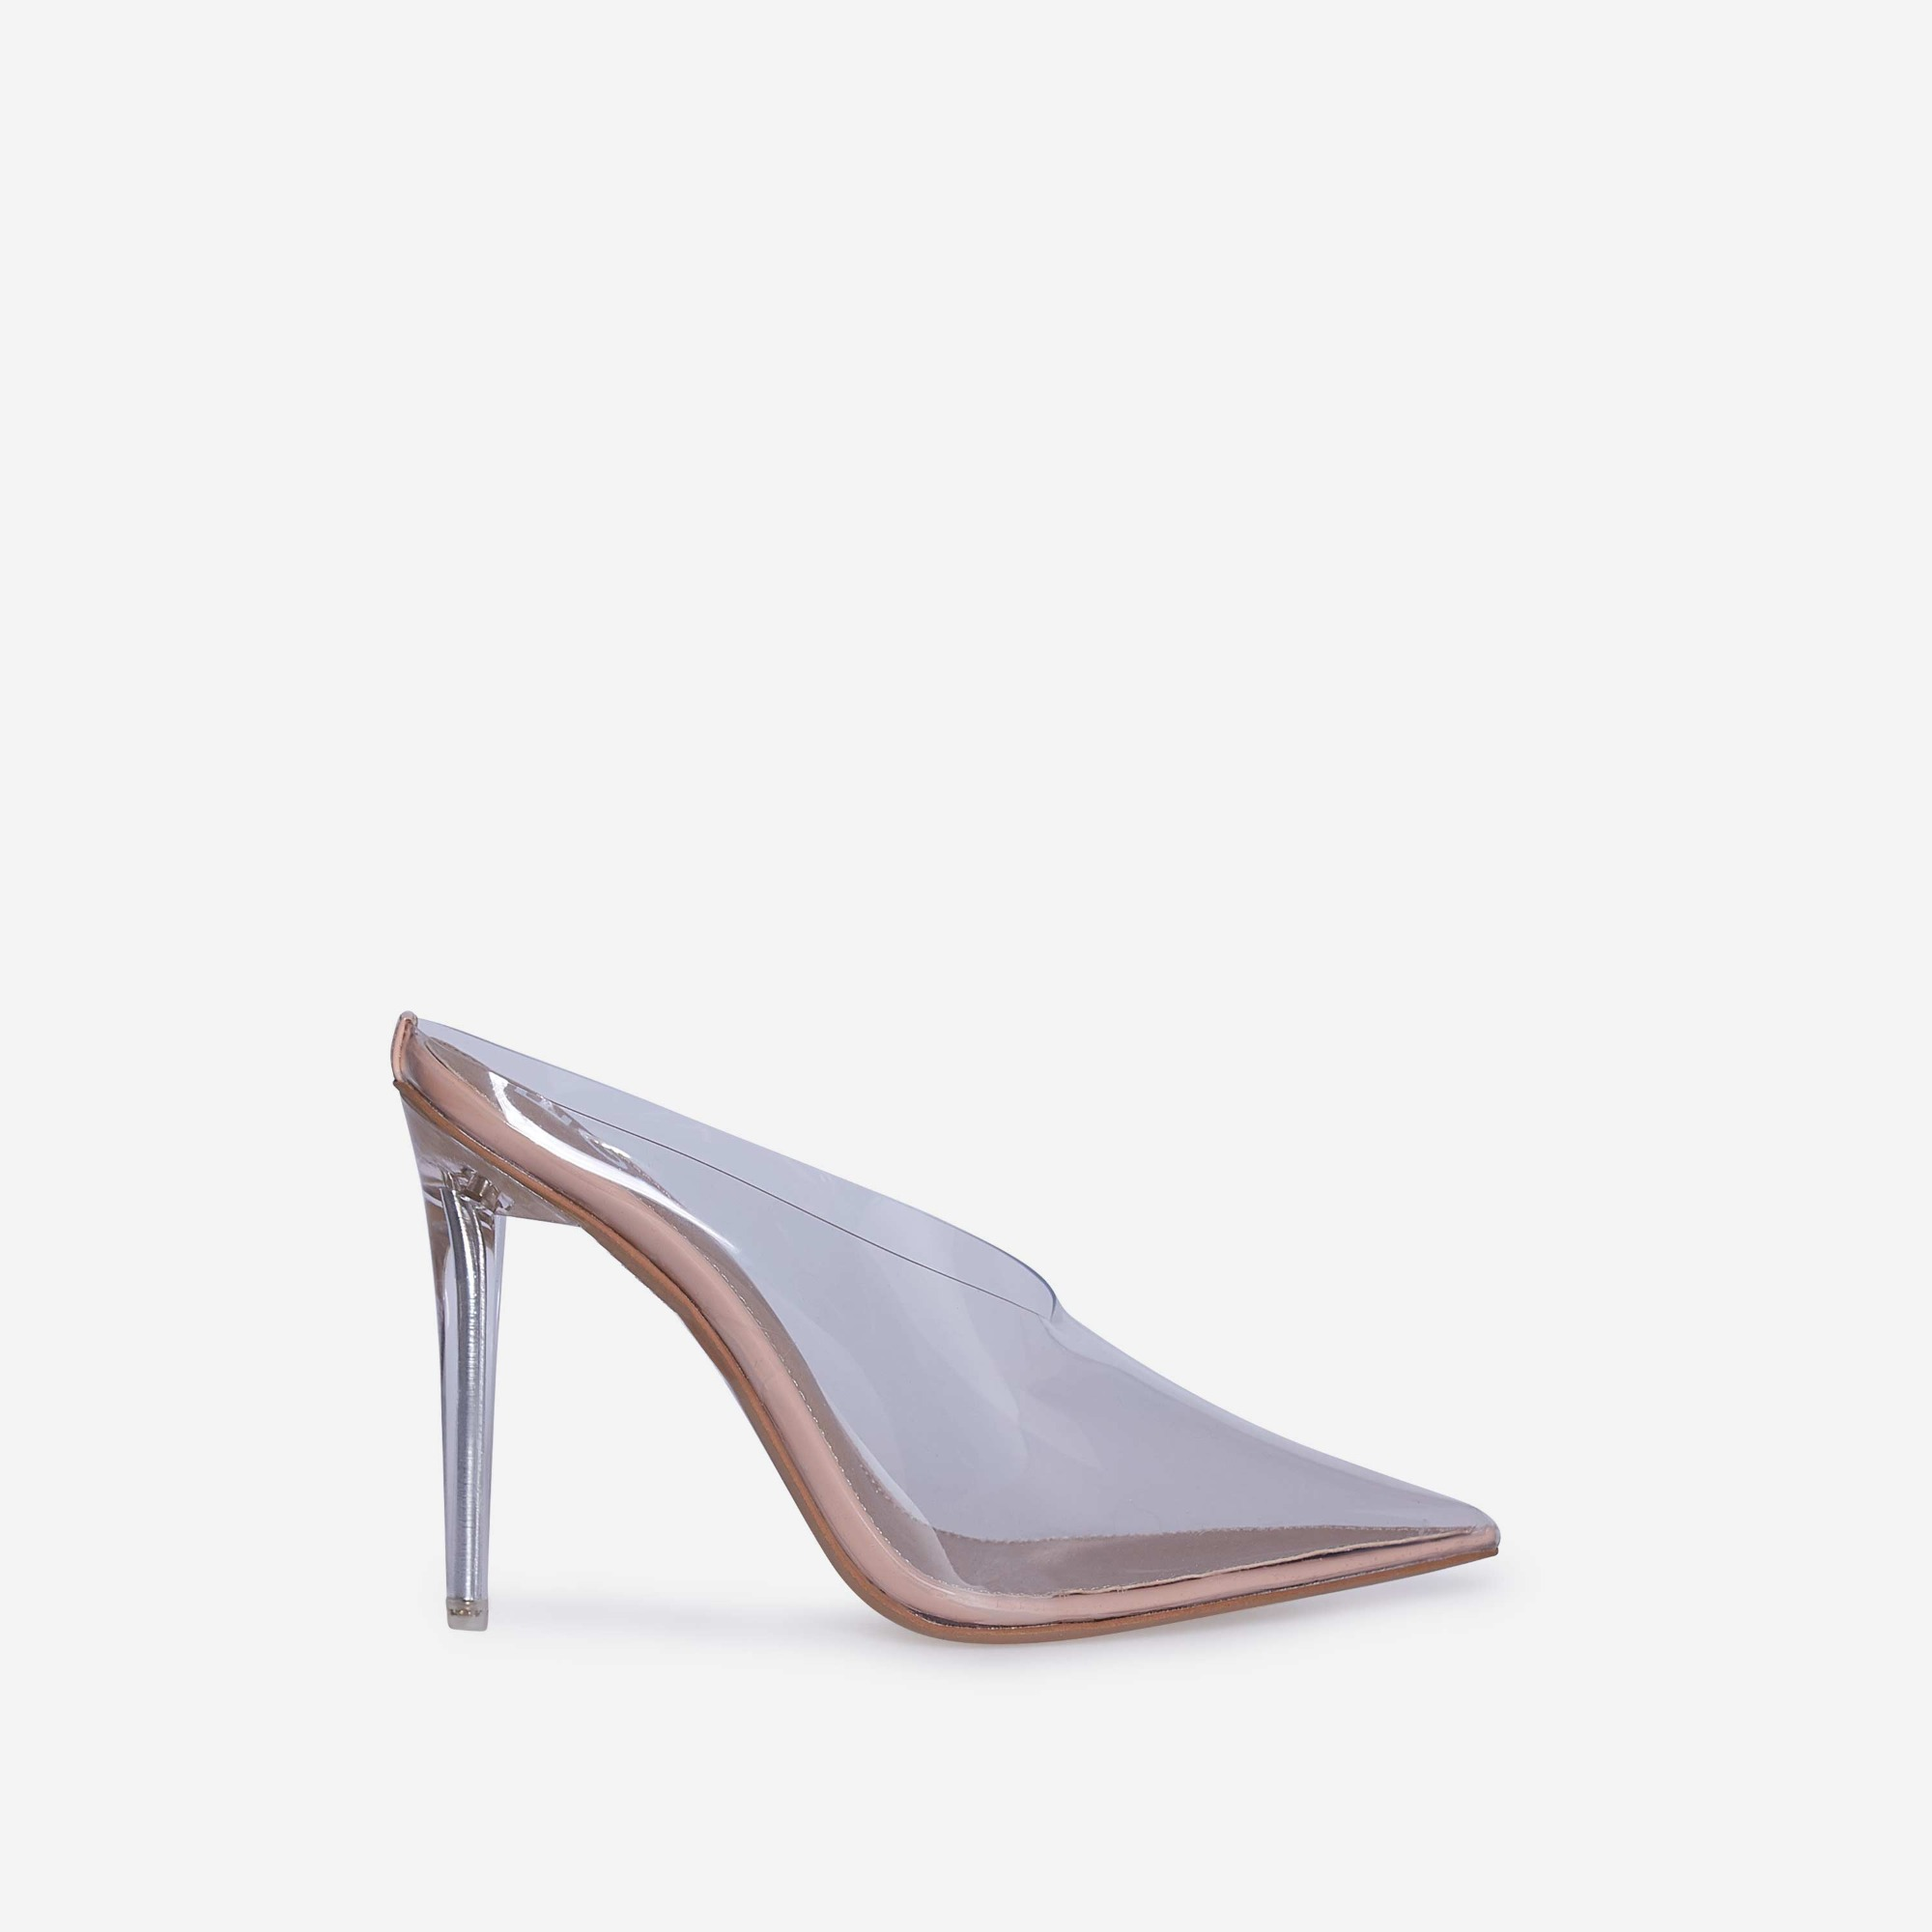 Raquel Closed Toe Perspex Mule Heel In Nude Patent